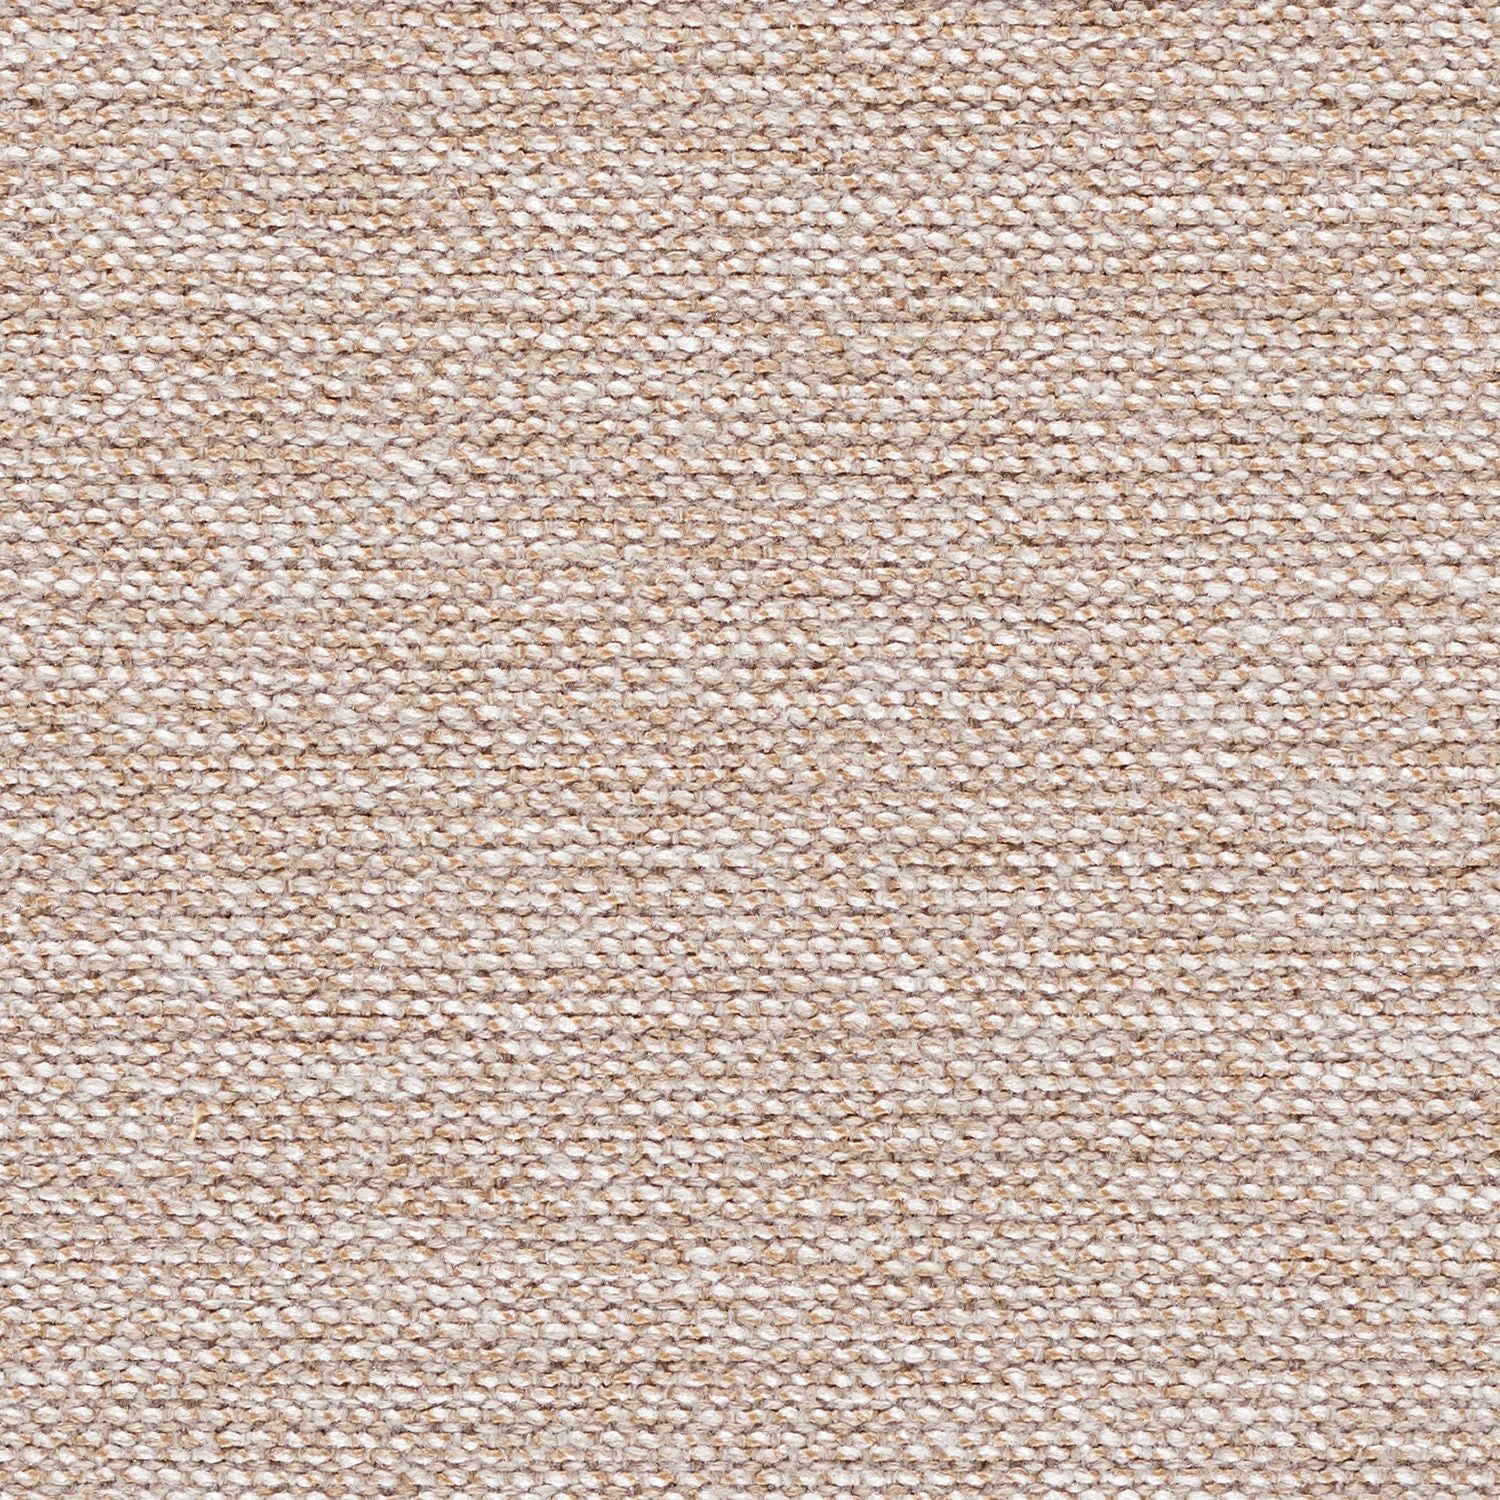 Superspun - Spindle - 4064 - 06